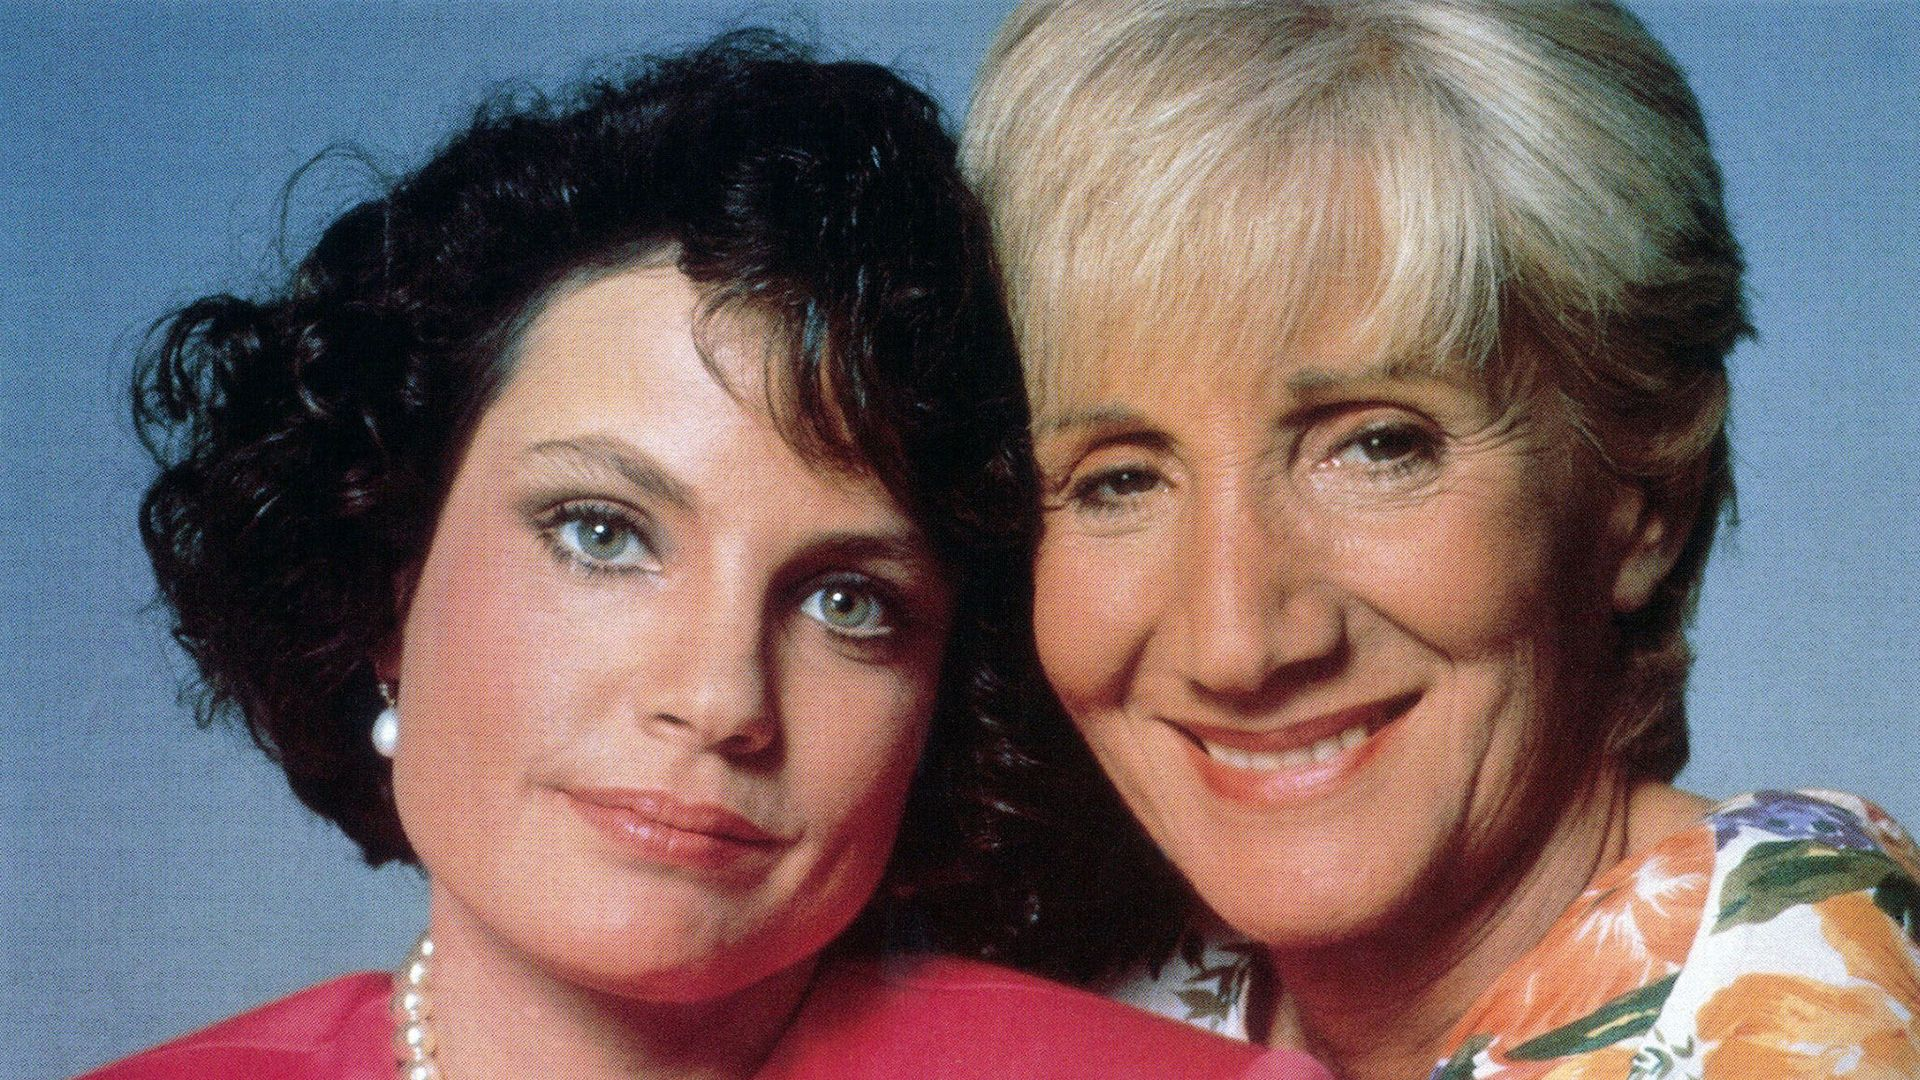 OVER THE HILL, from left: Sigrid Thornton, Olympia Dukakis, 1992.